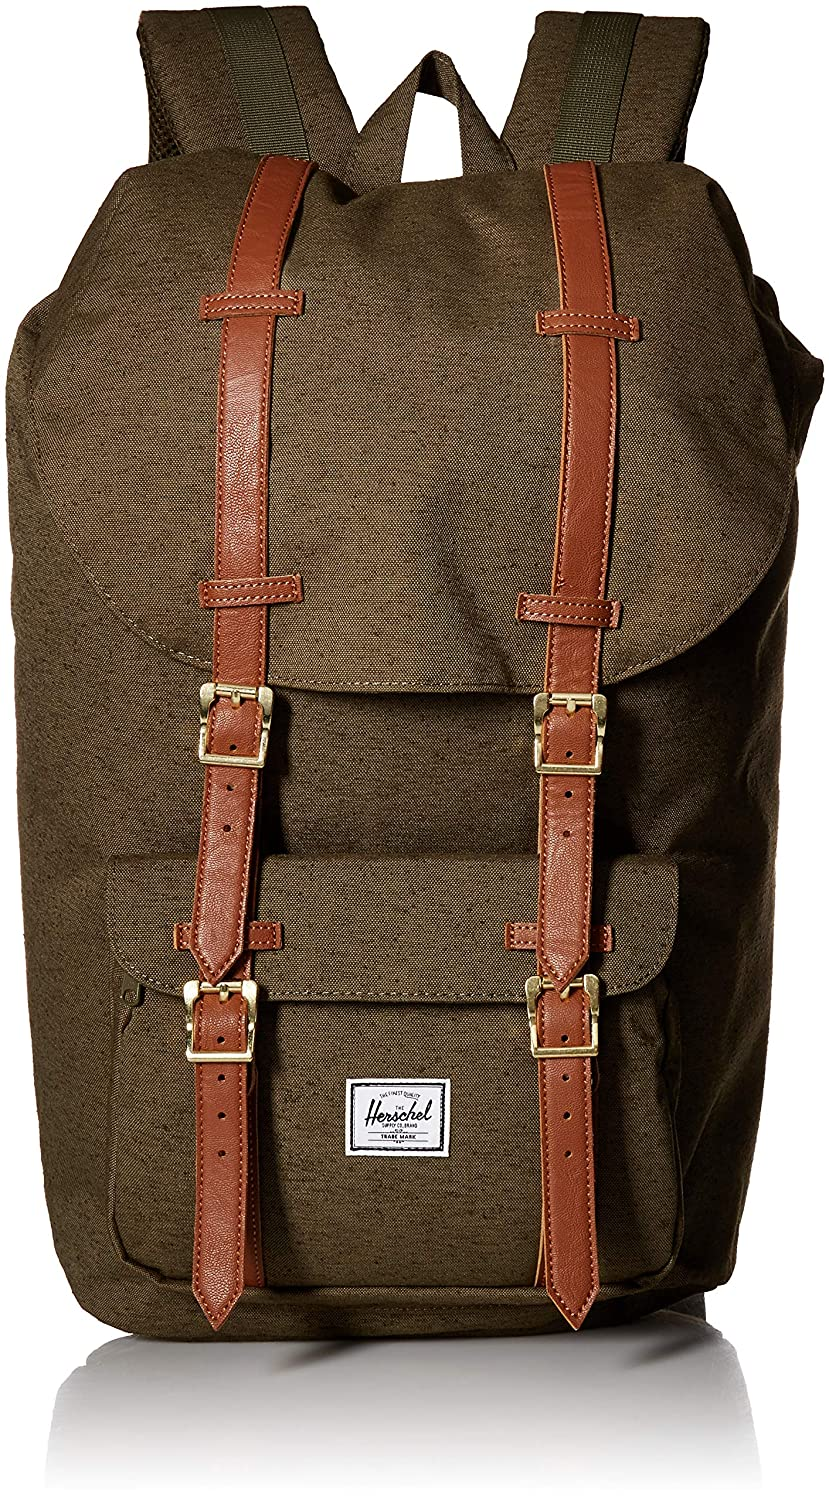 Herschel Little America Backpack-Navy Herschel Supply Co. 10014-00007-OS